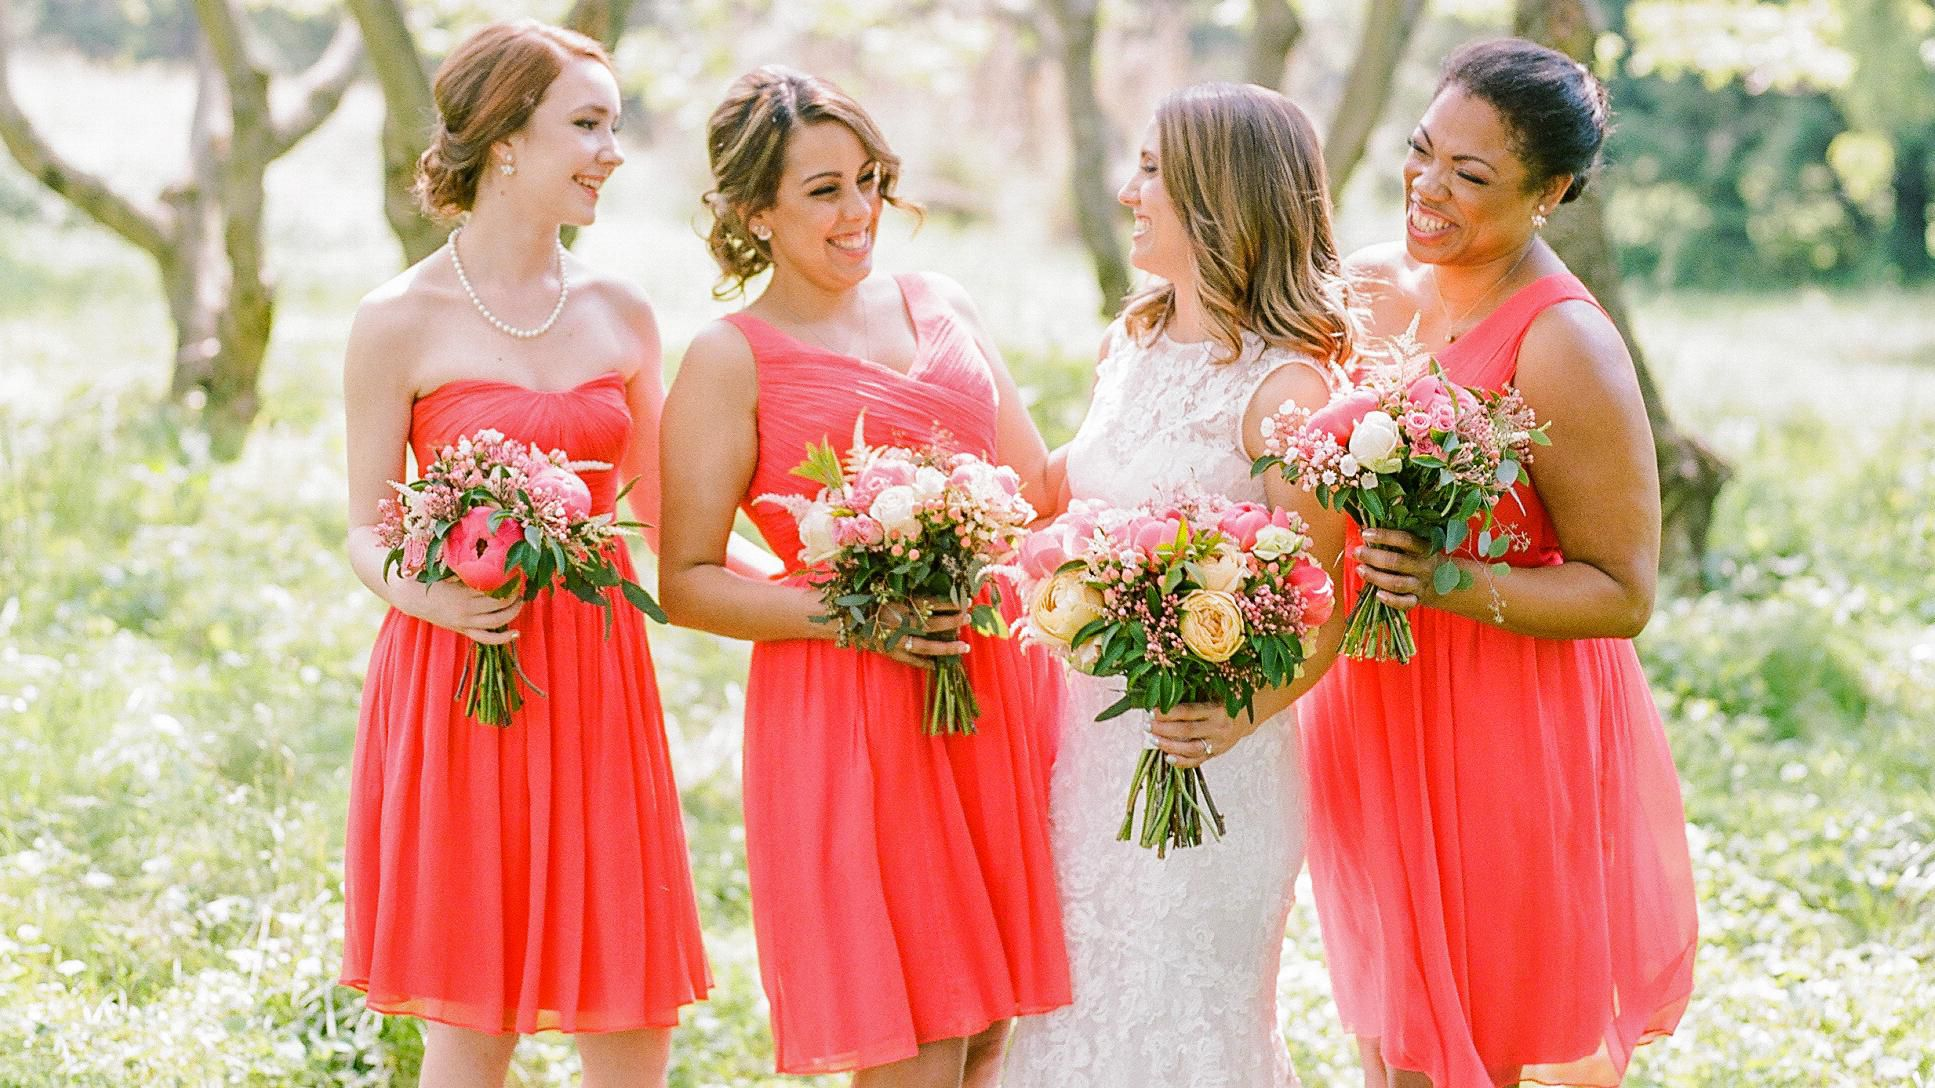 Do Bridesmaids Need To Bring Gifts To All Pre-Wedding Events?